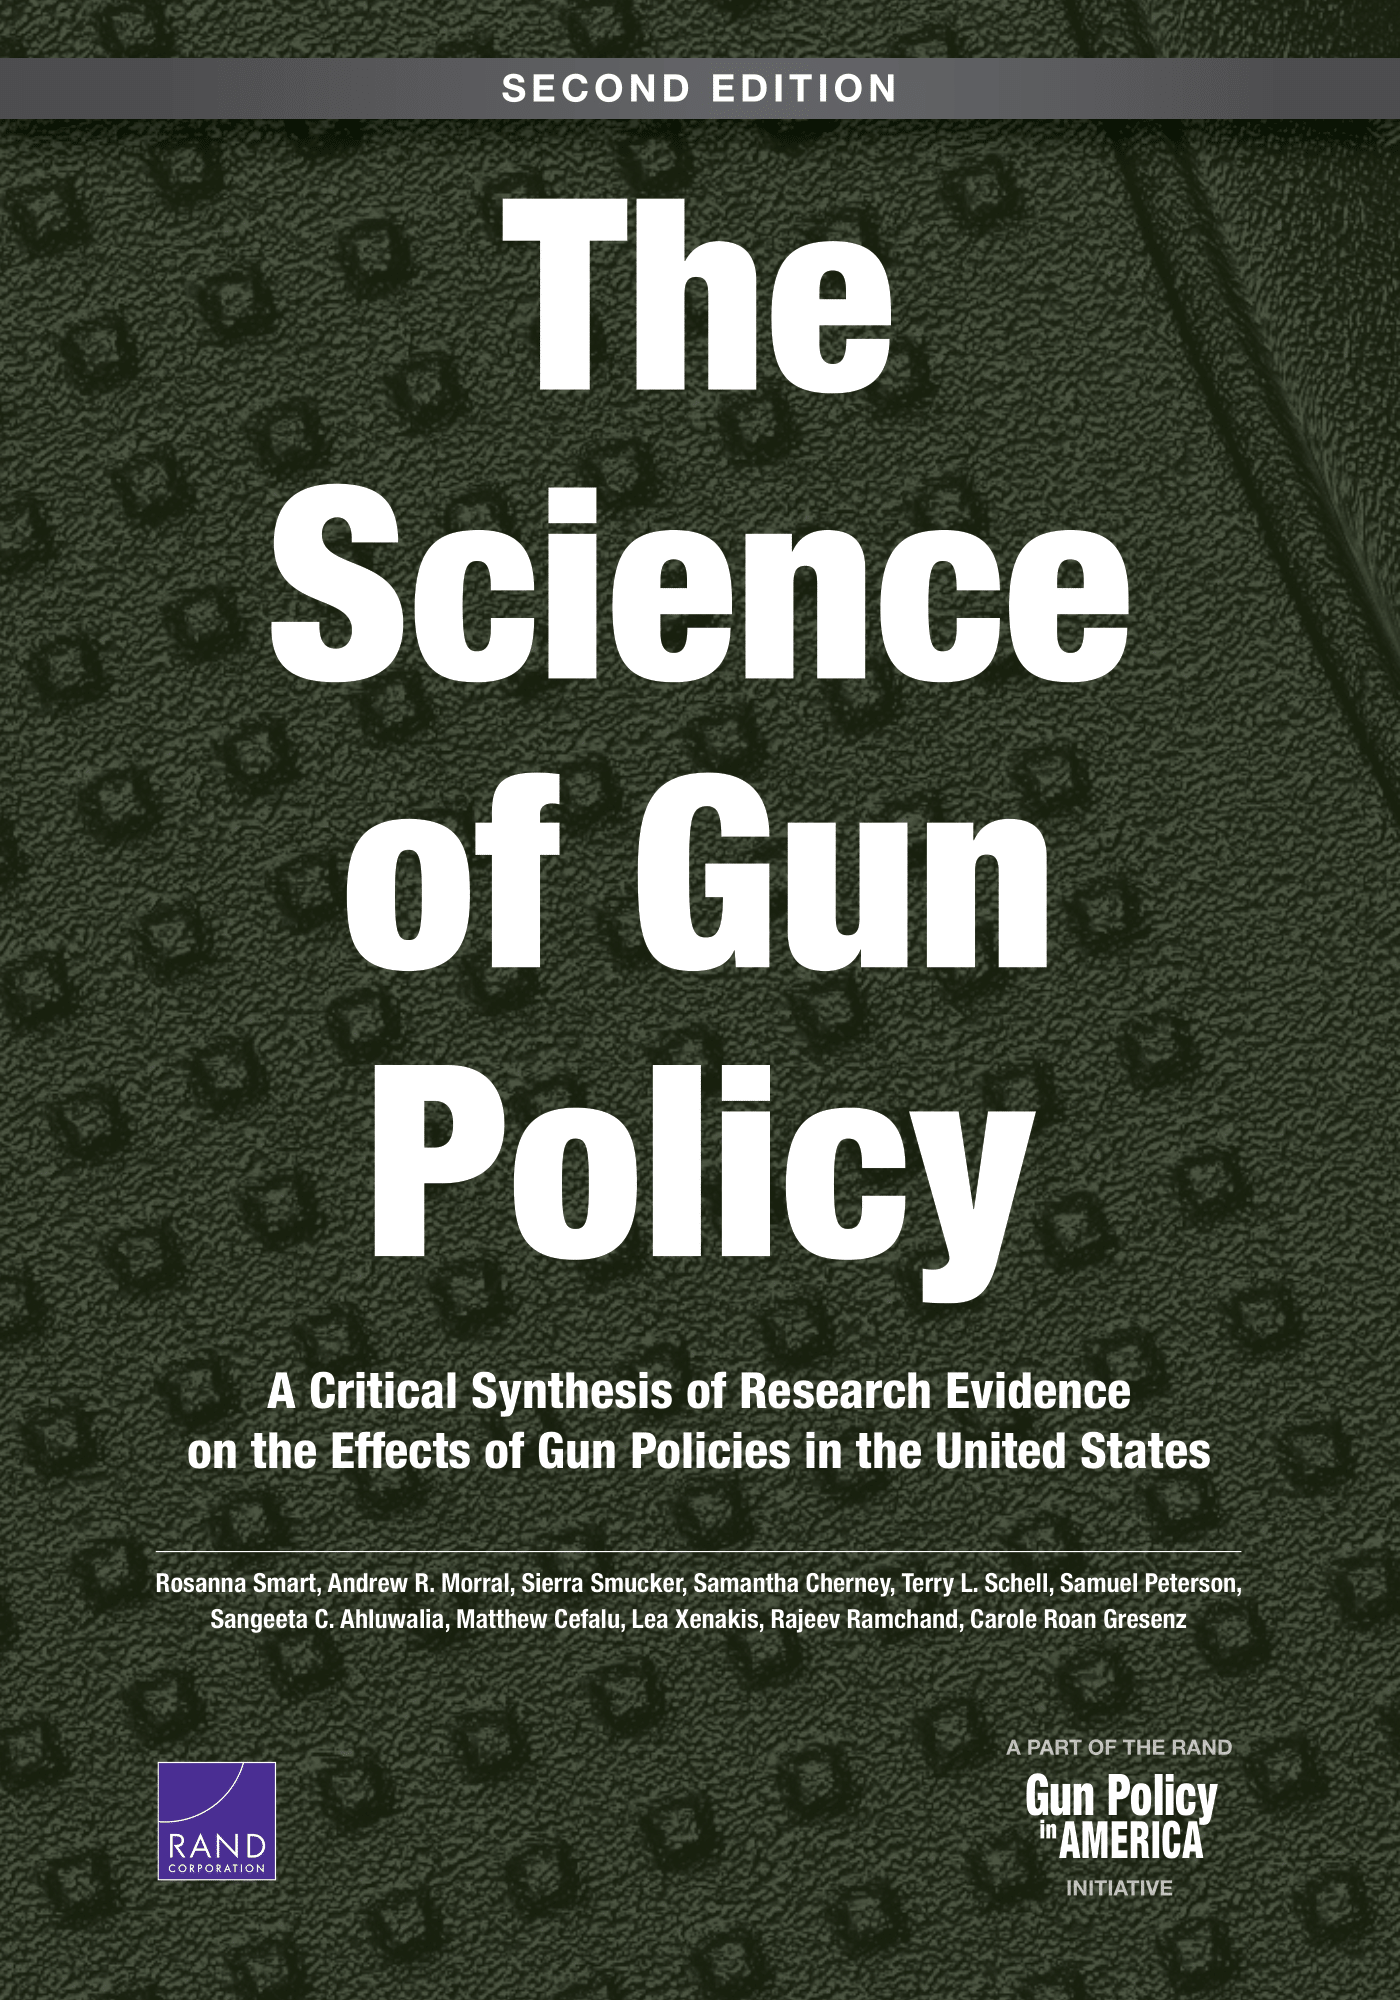 The Science of Gun Policy:  A Critical Synthesis of Research Evidence on the Effects of Gun Policies in the United States, Second Edition